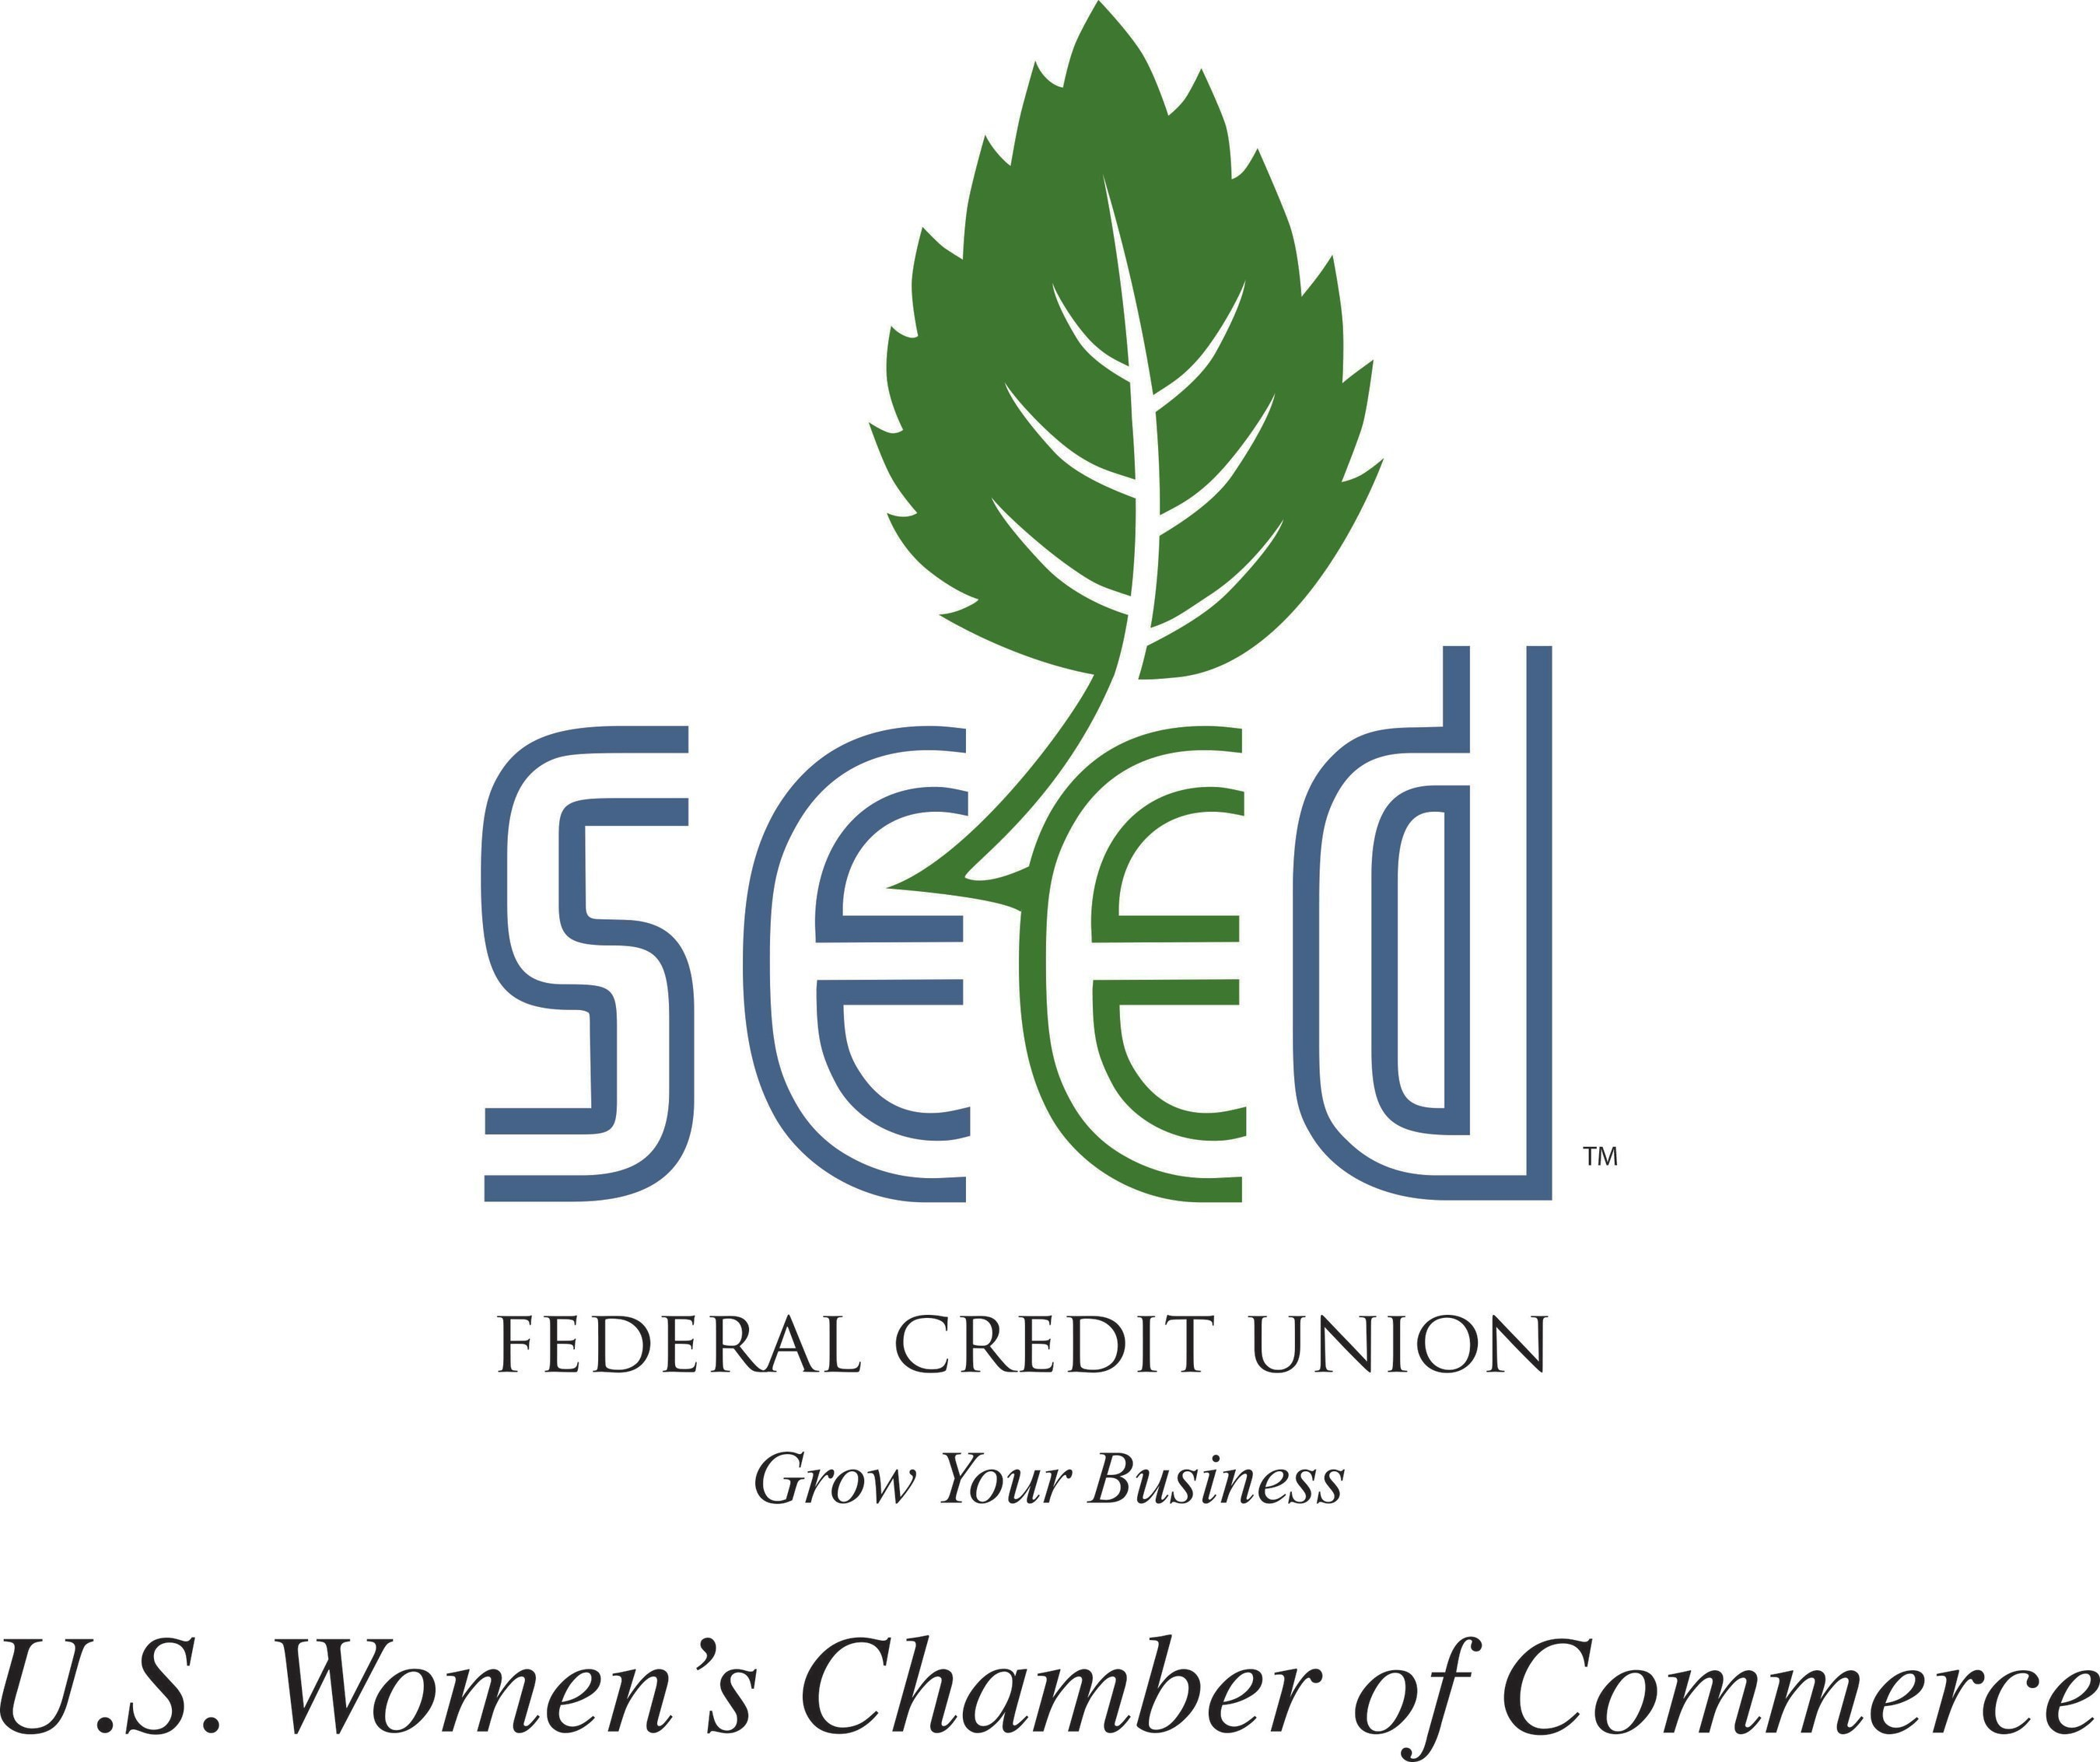 U.S. Women's Chamber of Commerce Seed Federal Credit Union